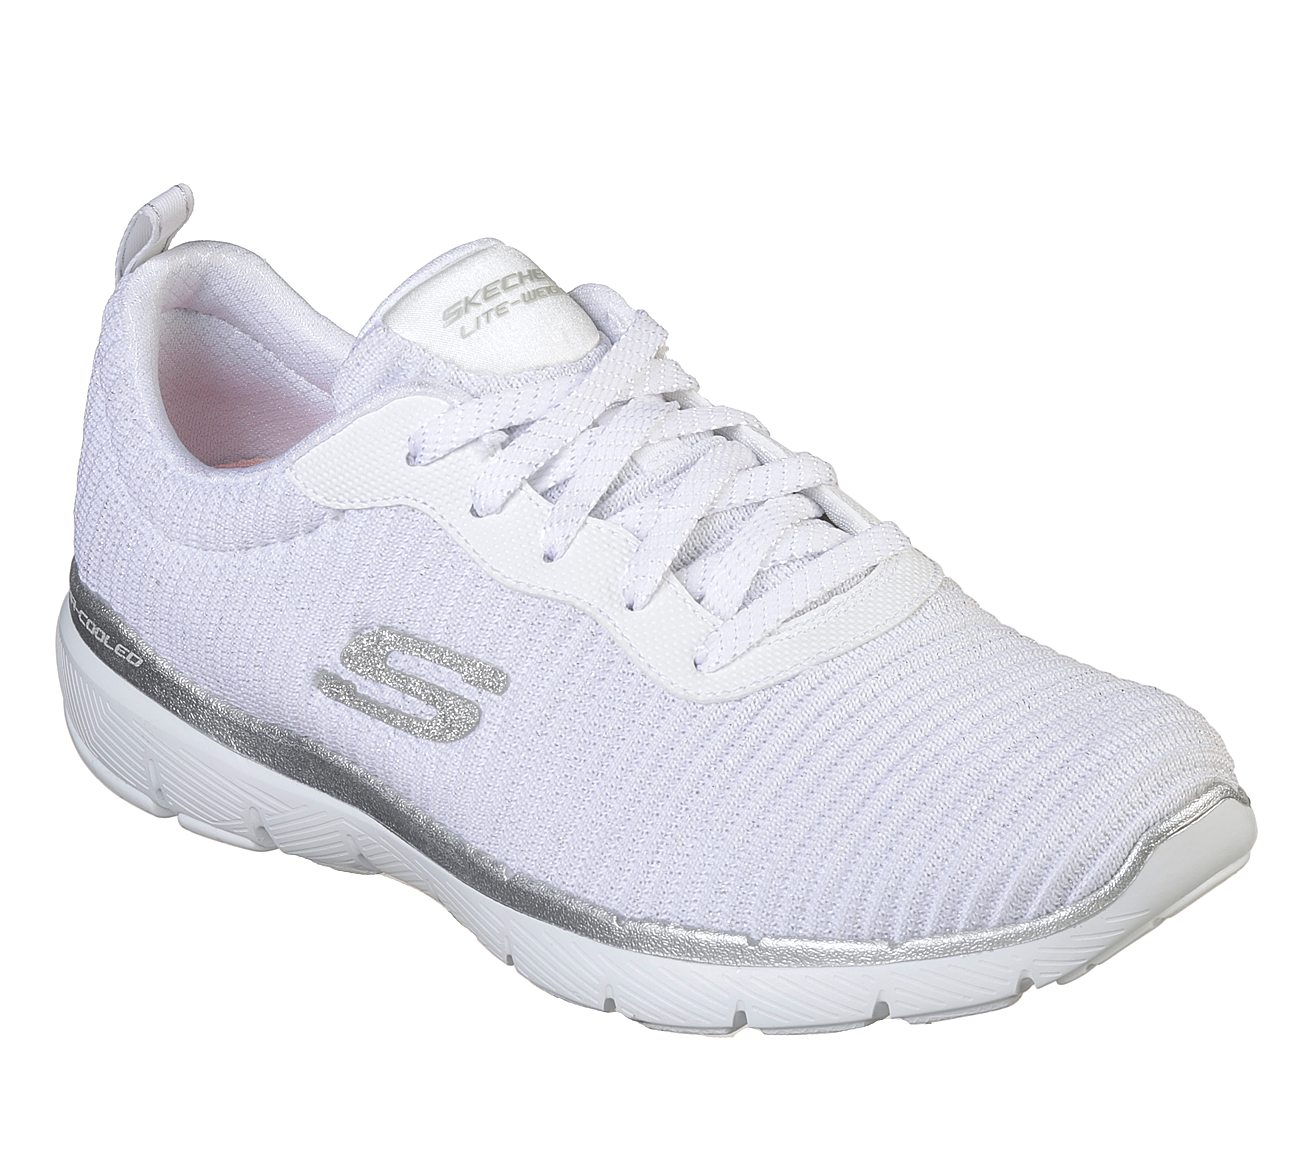 cec3c6b0a5e Buy SKECHERS Flex Appeal 3.0 - Endless Glamour Flex Appeal Shoes ...